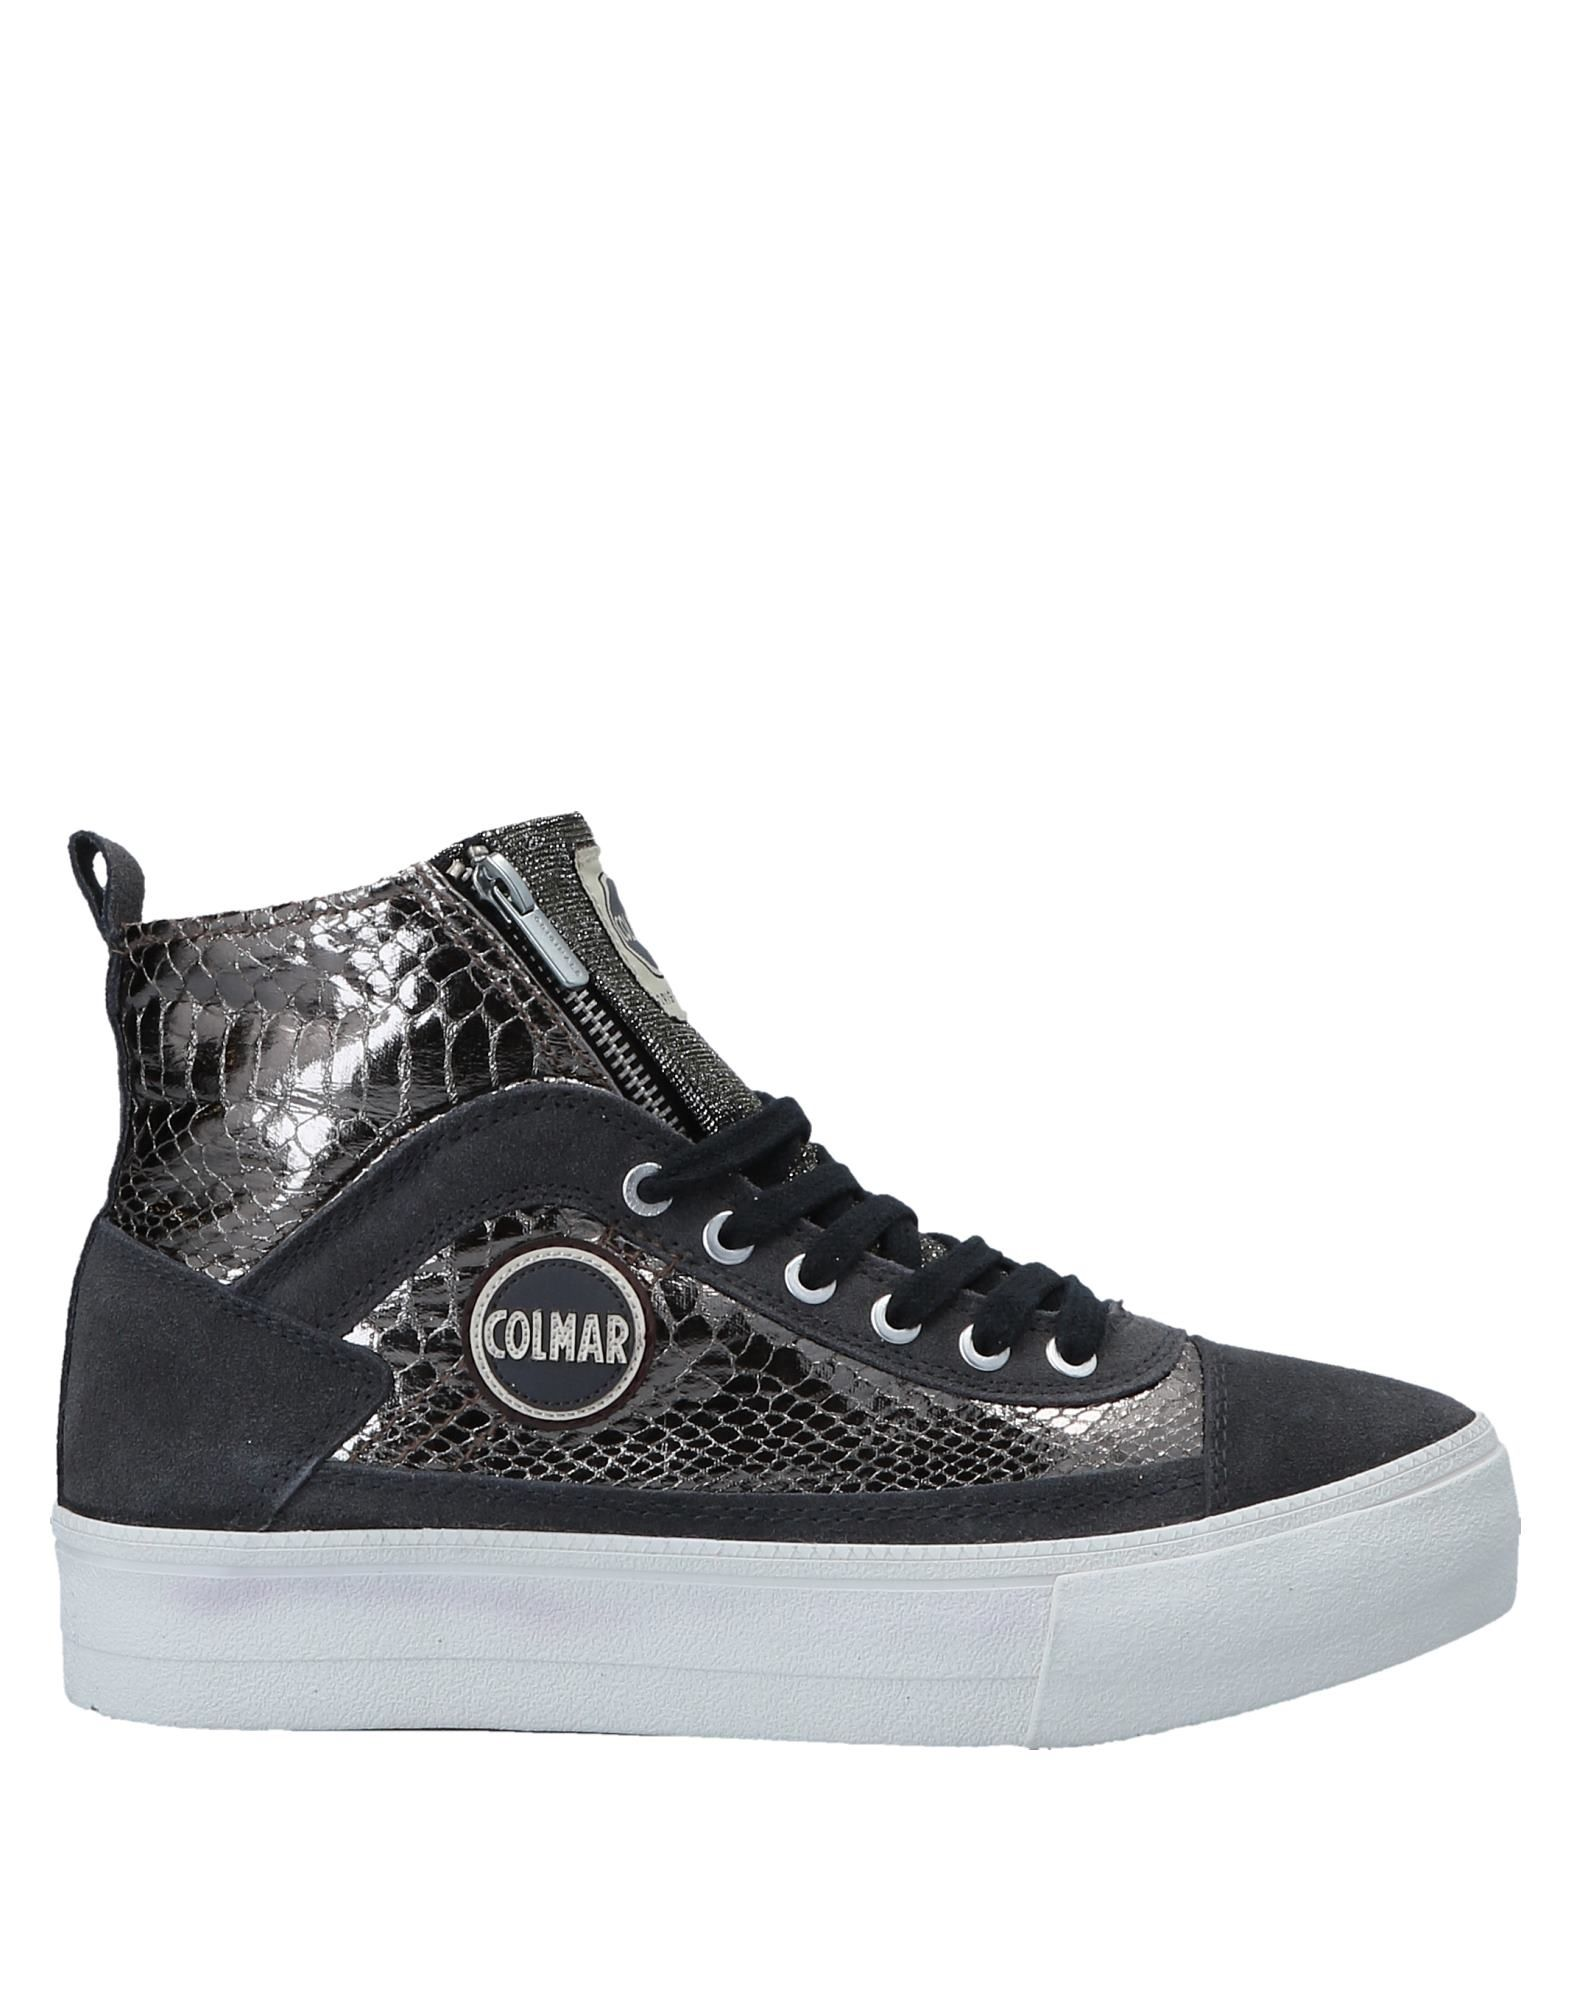 Colmar Sneakers - Women Colmar Sneakers - online on  Australia - Sneakers 11552509WO 60205c